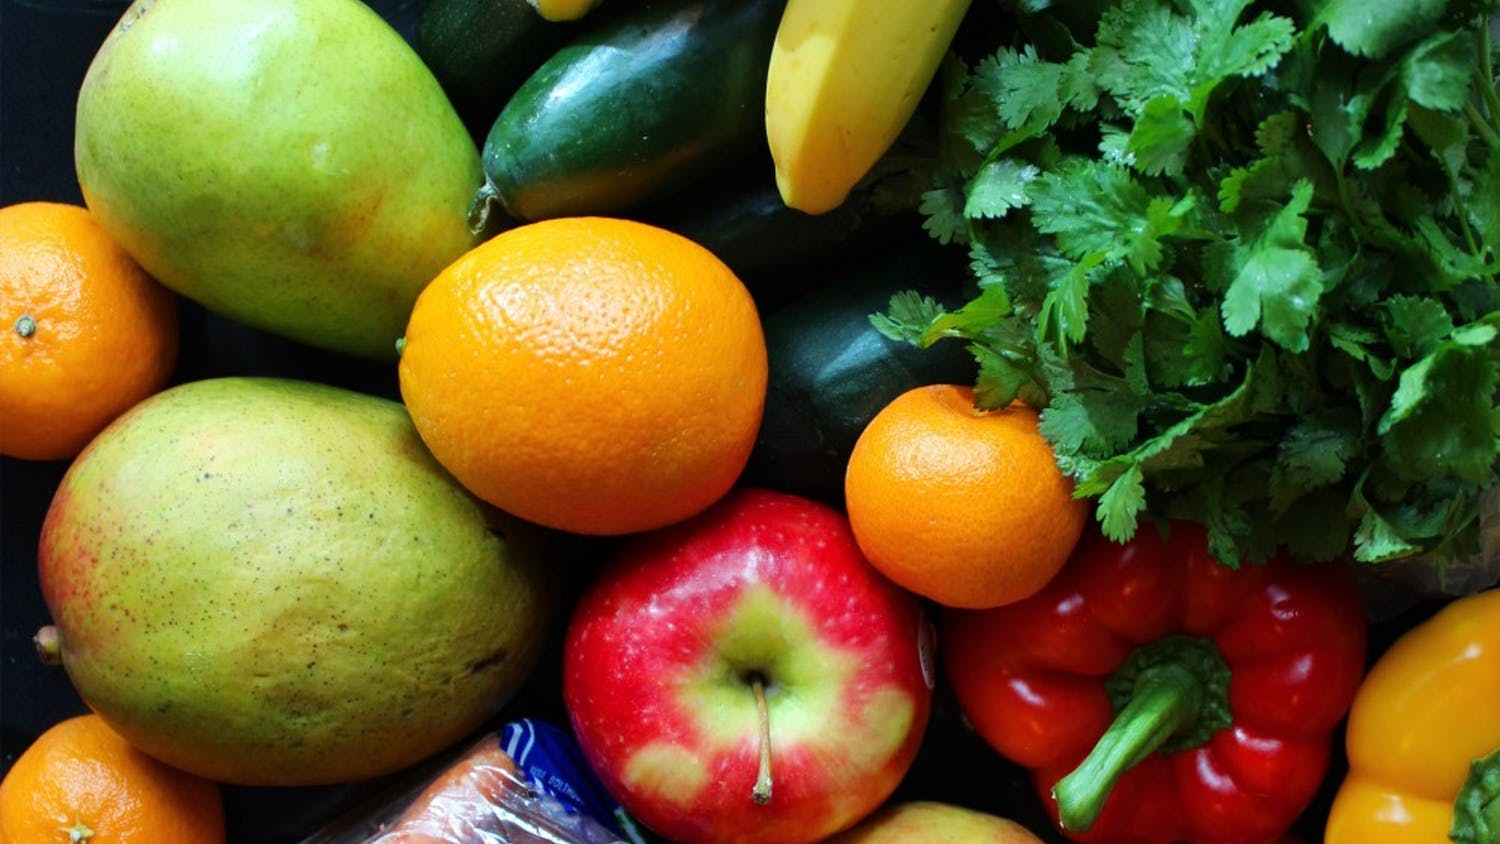 Fresh fruits, vegetables and nuts/seeds are the staples of any type of raw vegan diet.